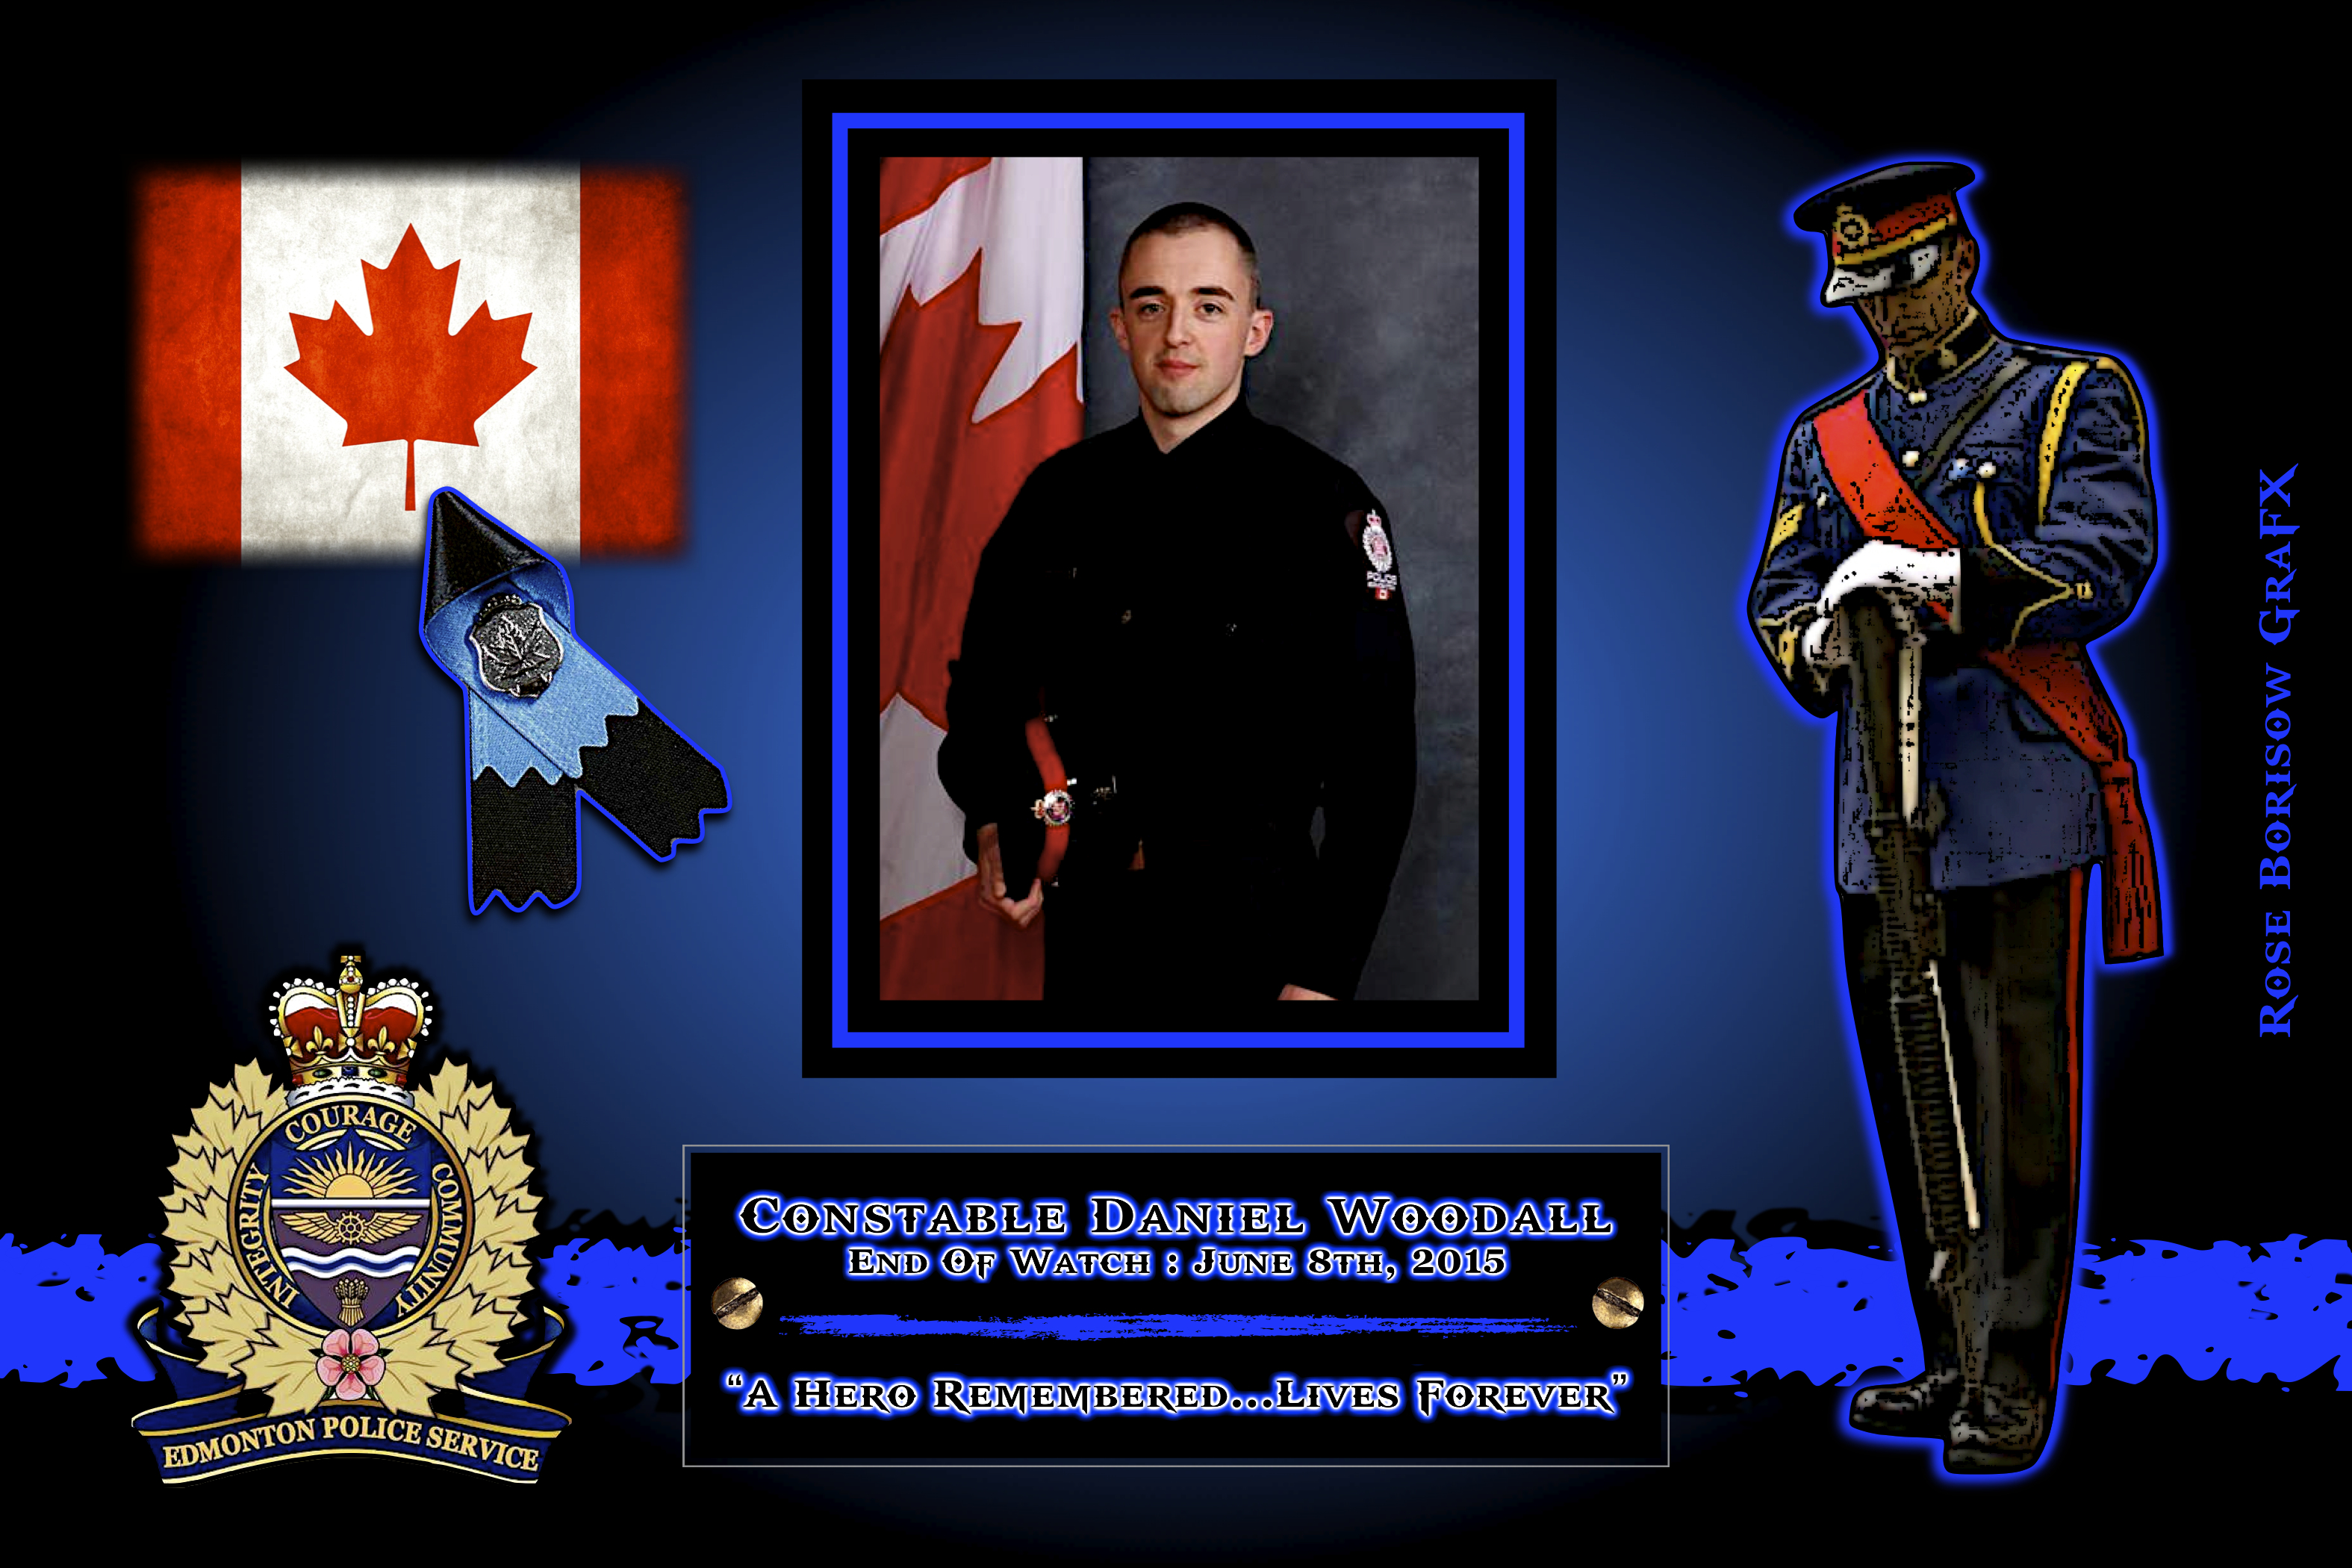 In Memoriam: Constable Daniel Woodall